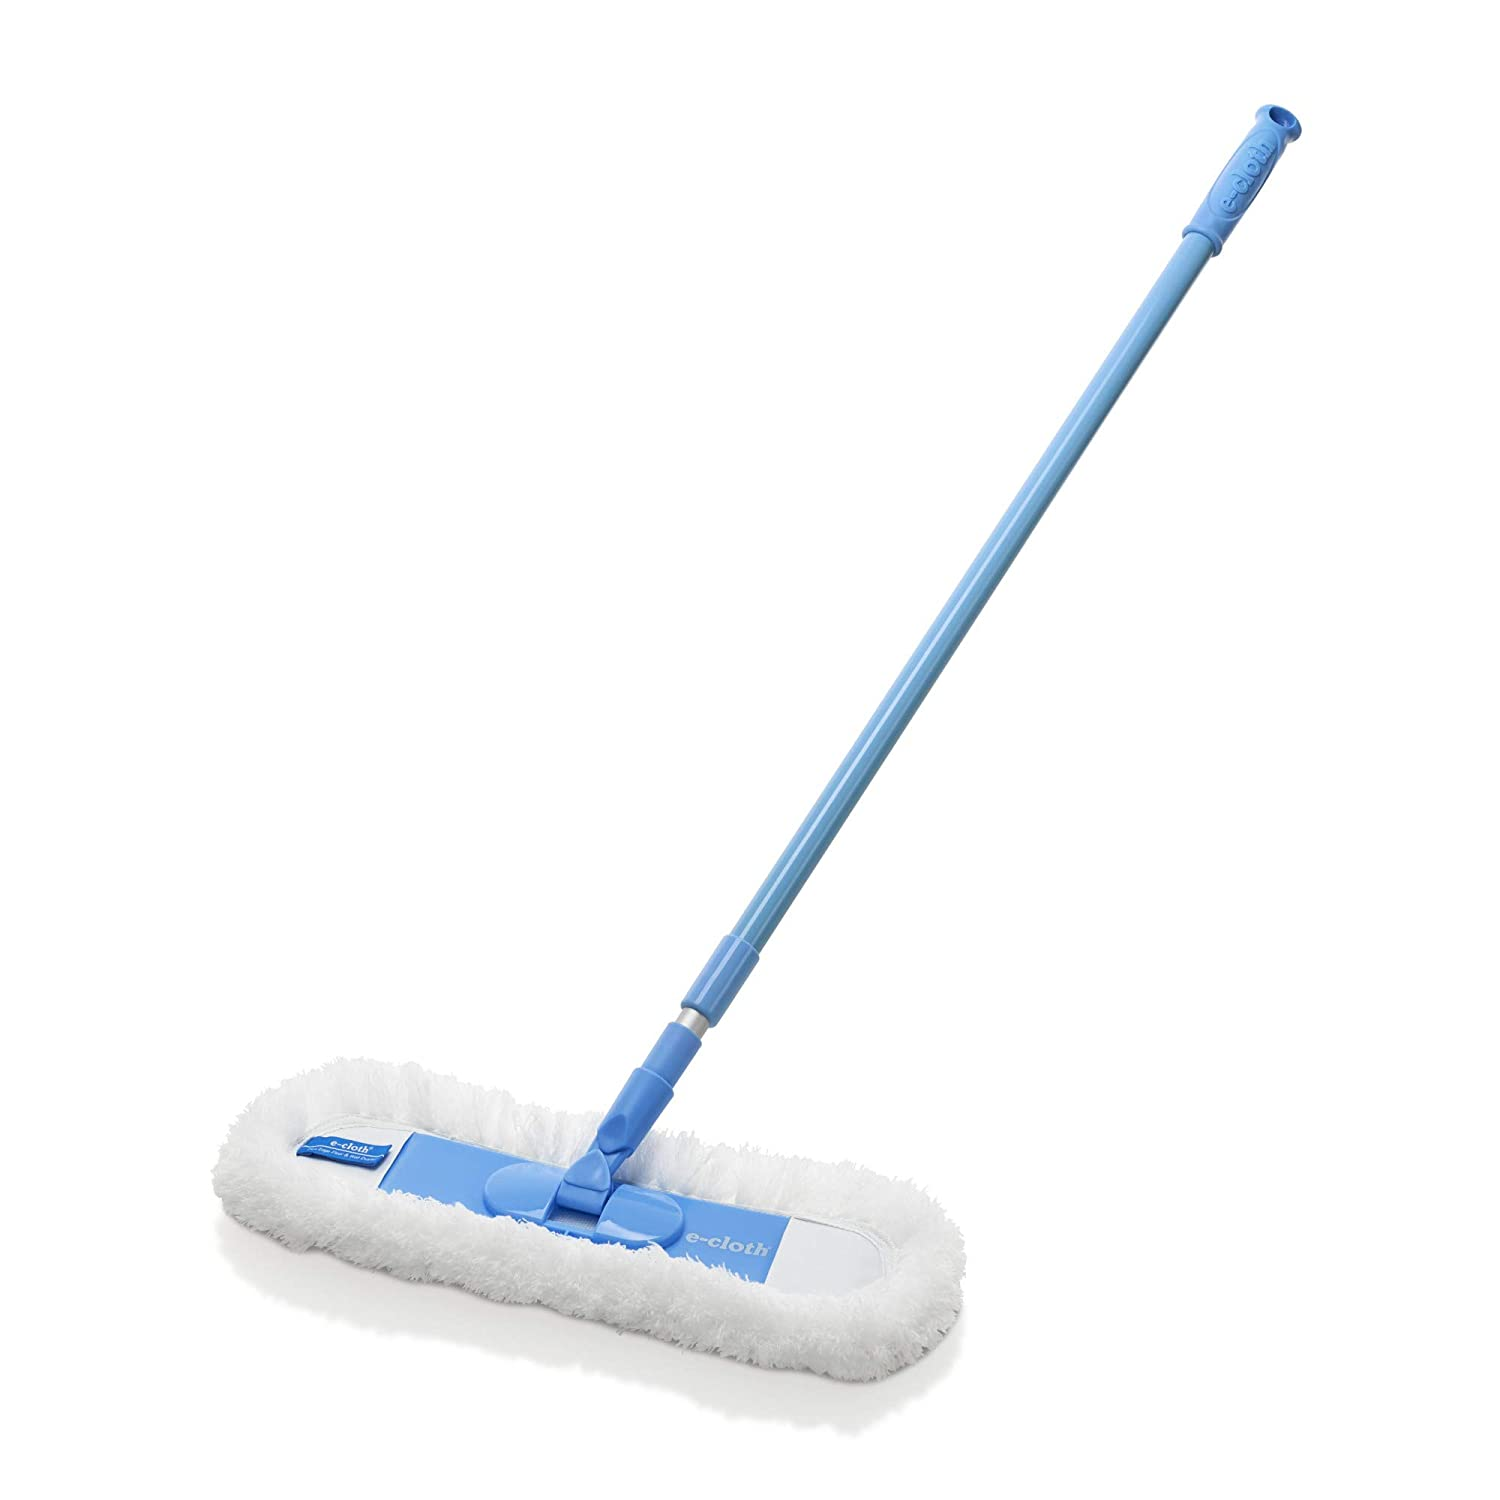 E-Cloth Flexi-Edge Floor & Wall Duster With Sturdy Telescoping Handle - Brilliant for Eliminating Dust, Allergans, Lint From Floors and Walls